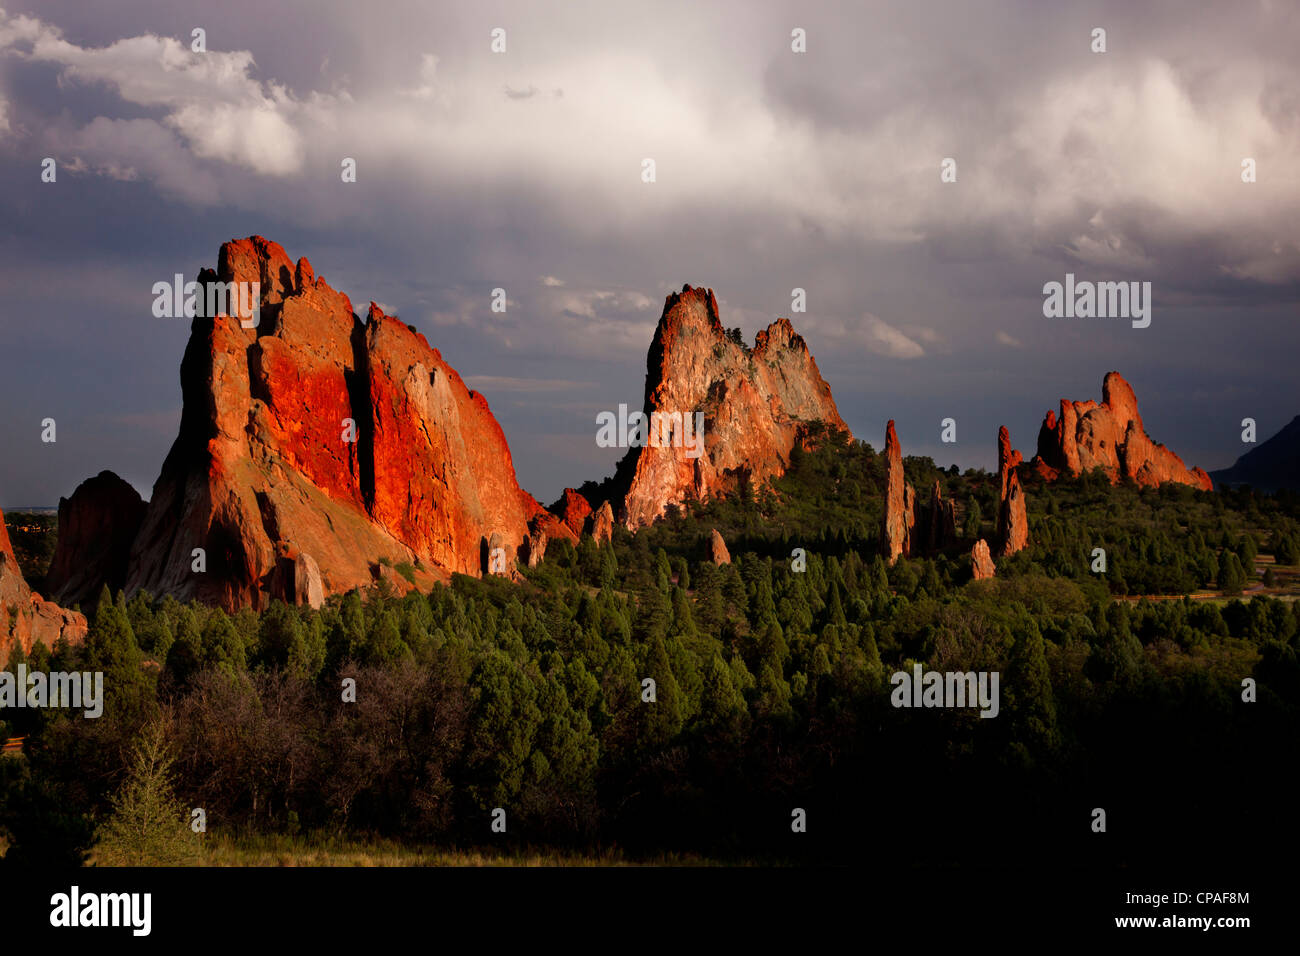 USA, Colorado, Garden of the Gods. Sunset light on sandstone formations.  Credit as - Stock Image